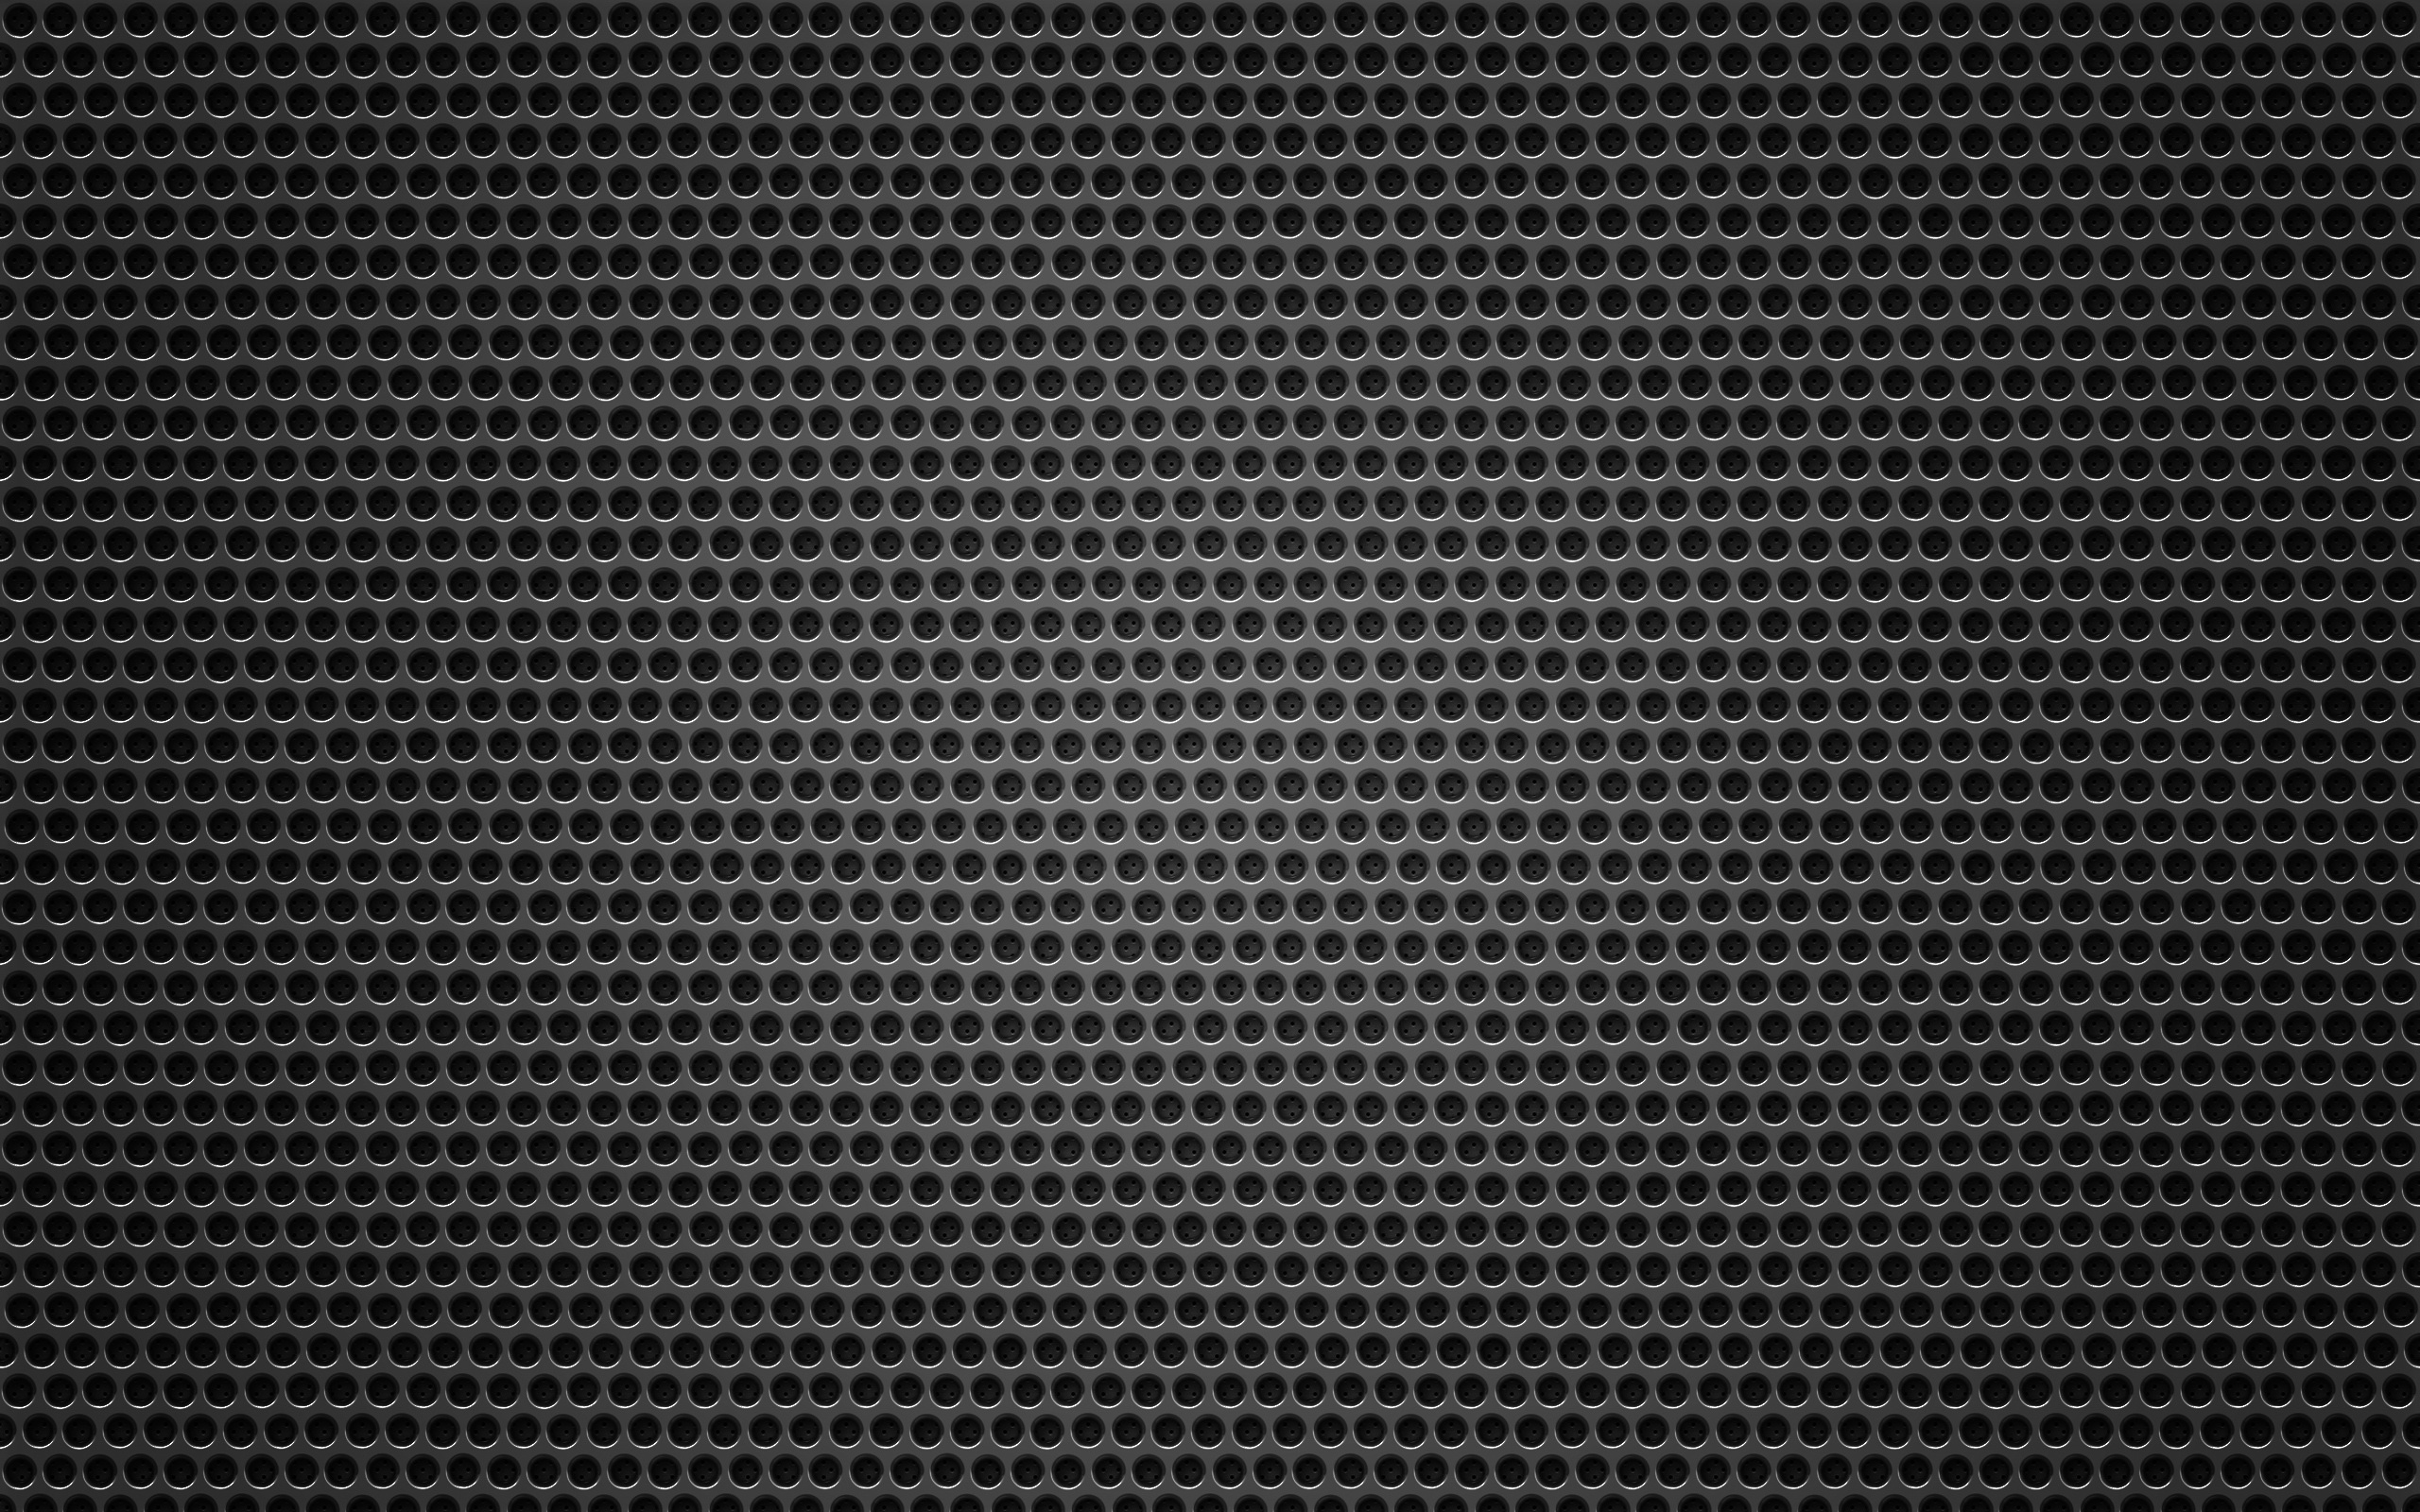 Iphone 5 Carbon Fiber Wallpaper Metal Full Hd Fondo De Pantalla And Fondo De Escritorio